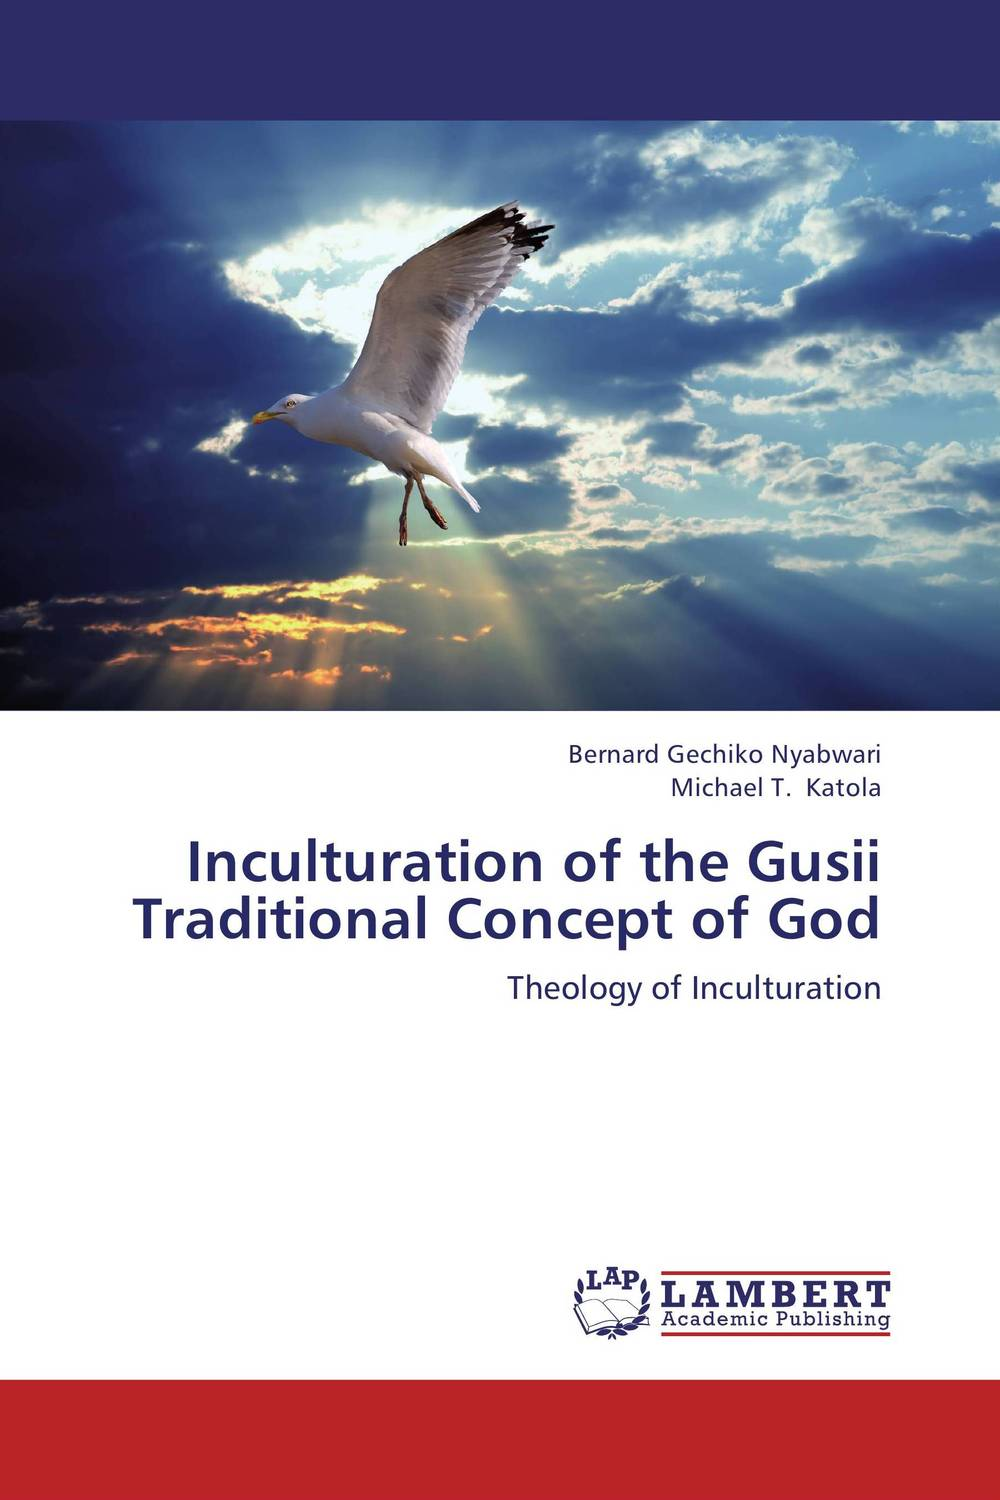 Inculturation of the Gusii Traditional Concept of God sola scriptura benedict xvi s theology of the word of god